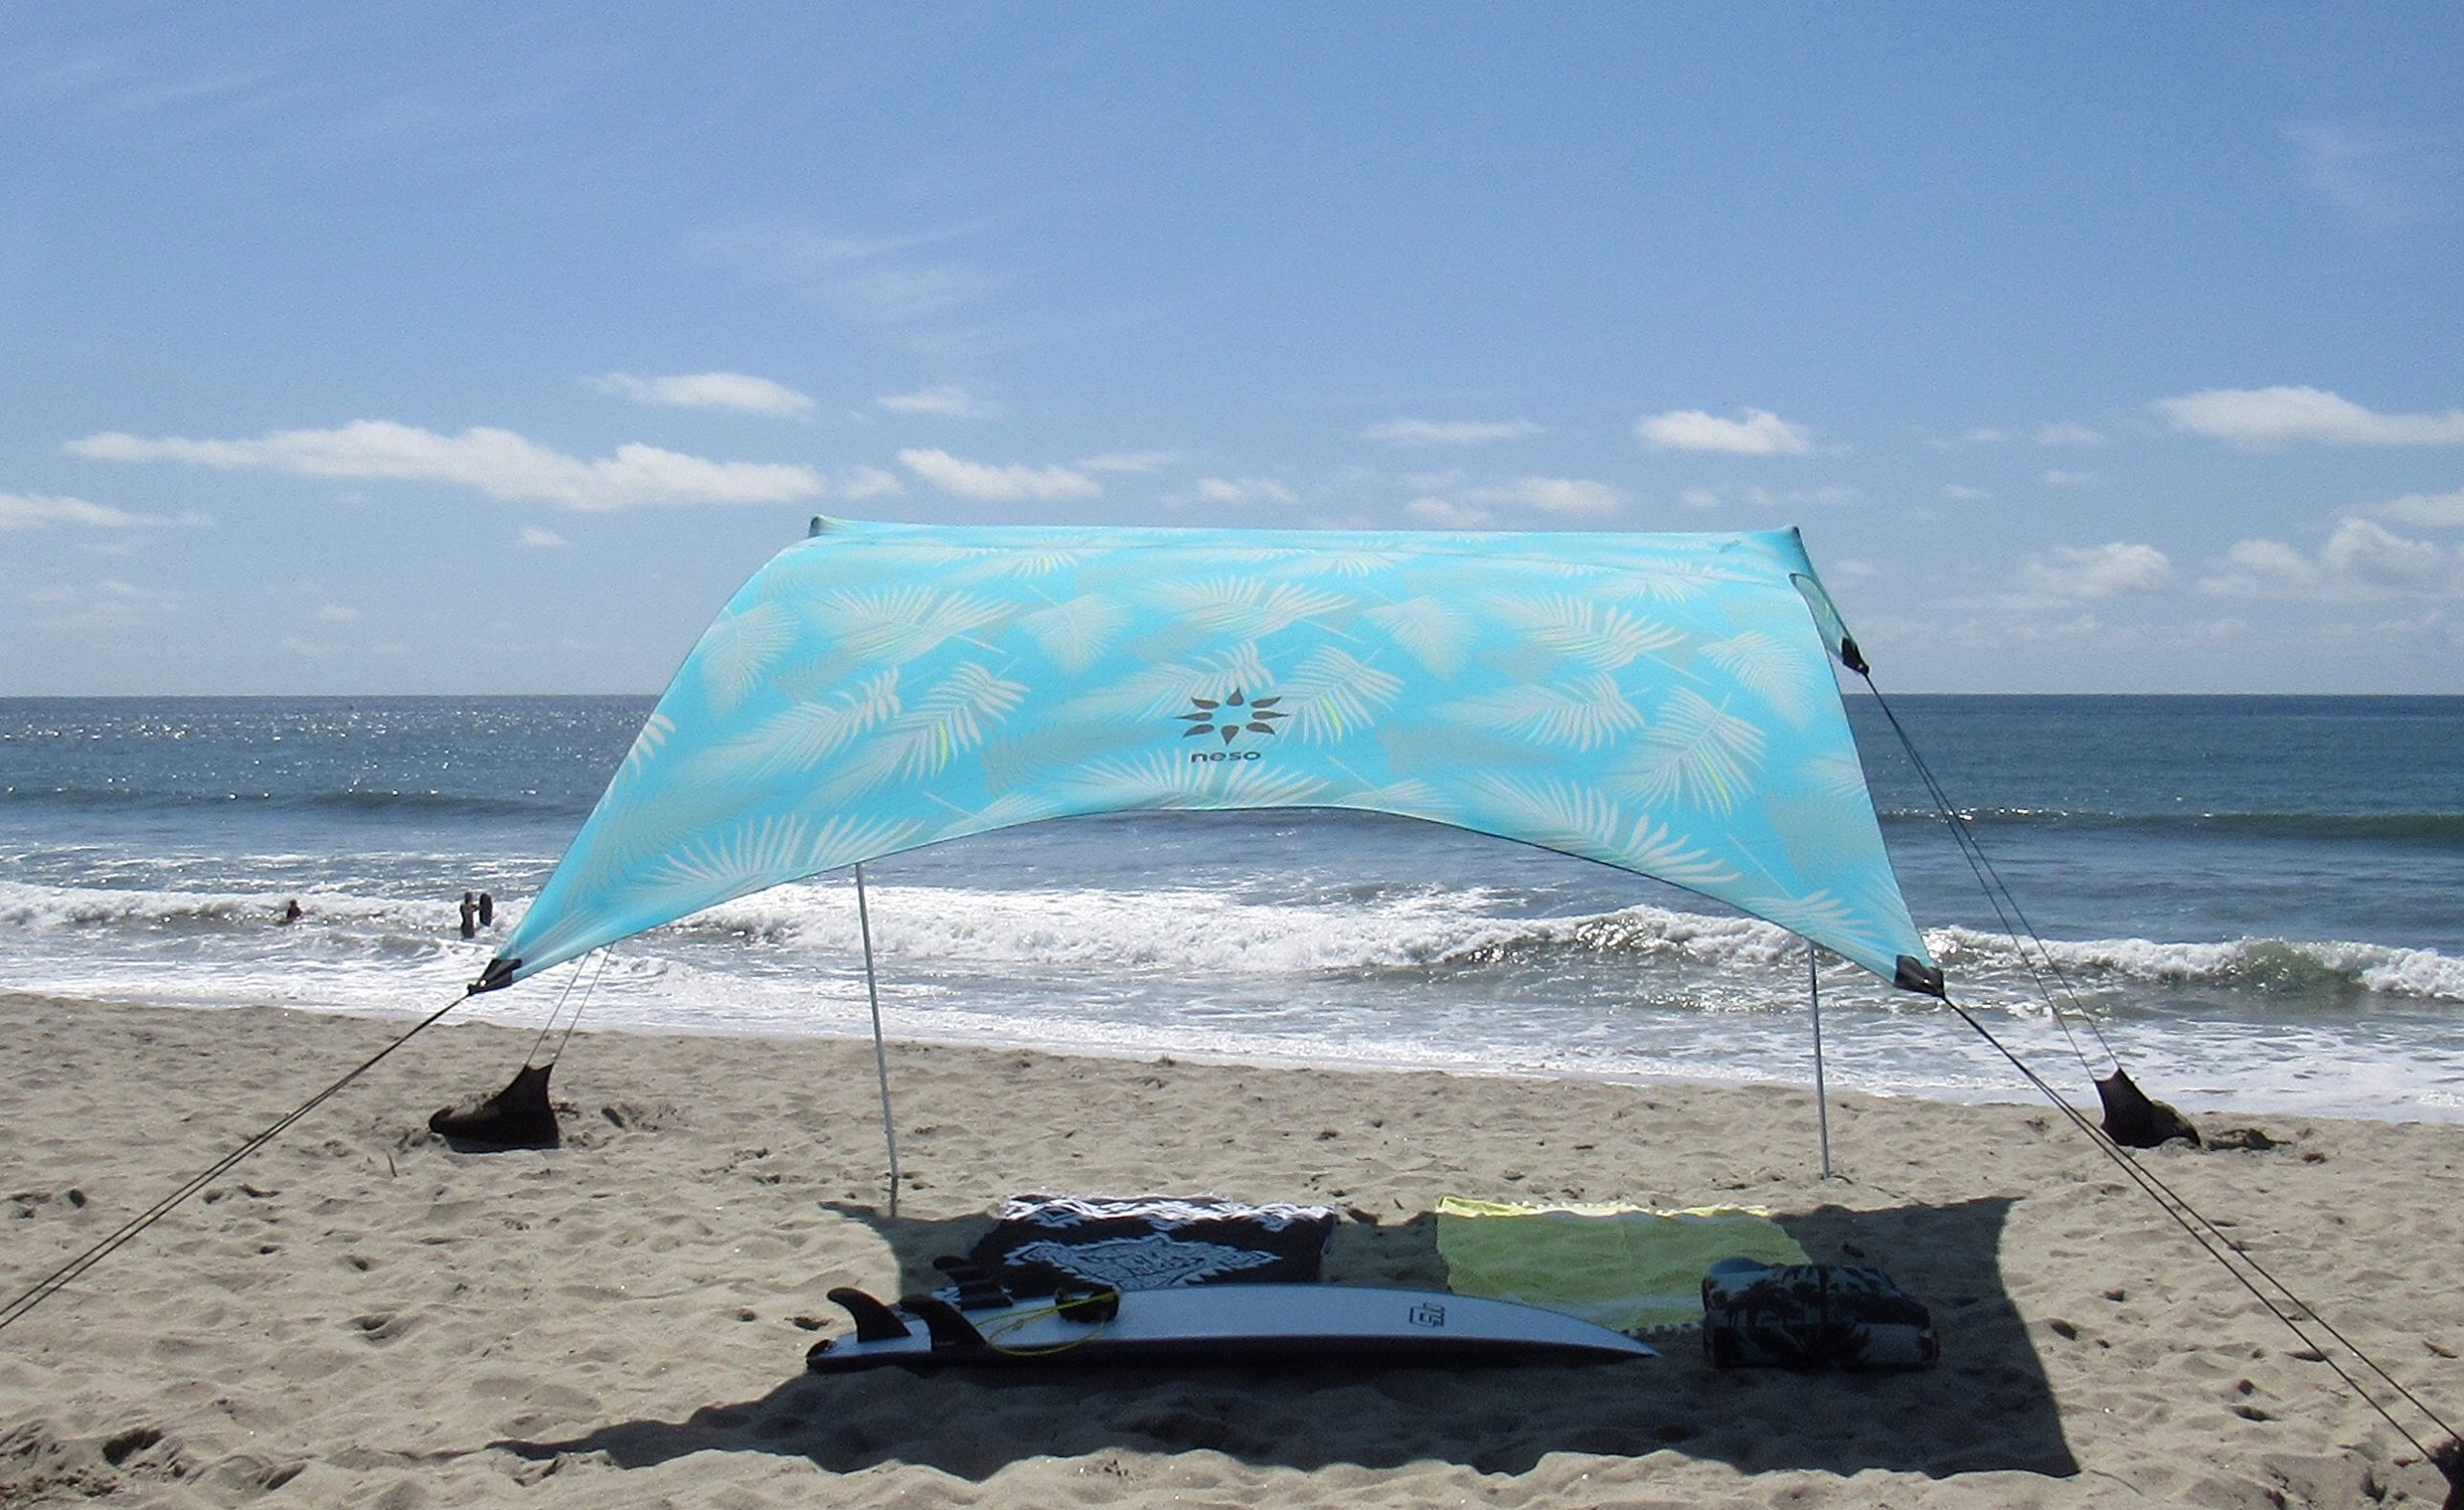 7ft x 2.7m Reinforced Corners and Cooler Pocket 9ft 2.1 m Tall Neso Tents Grande Beach Tent 2.7m 9ft